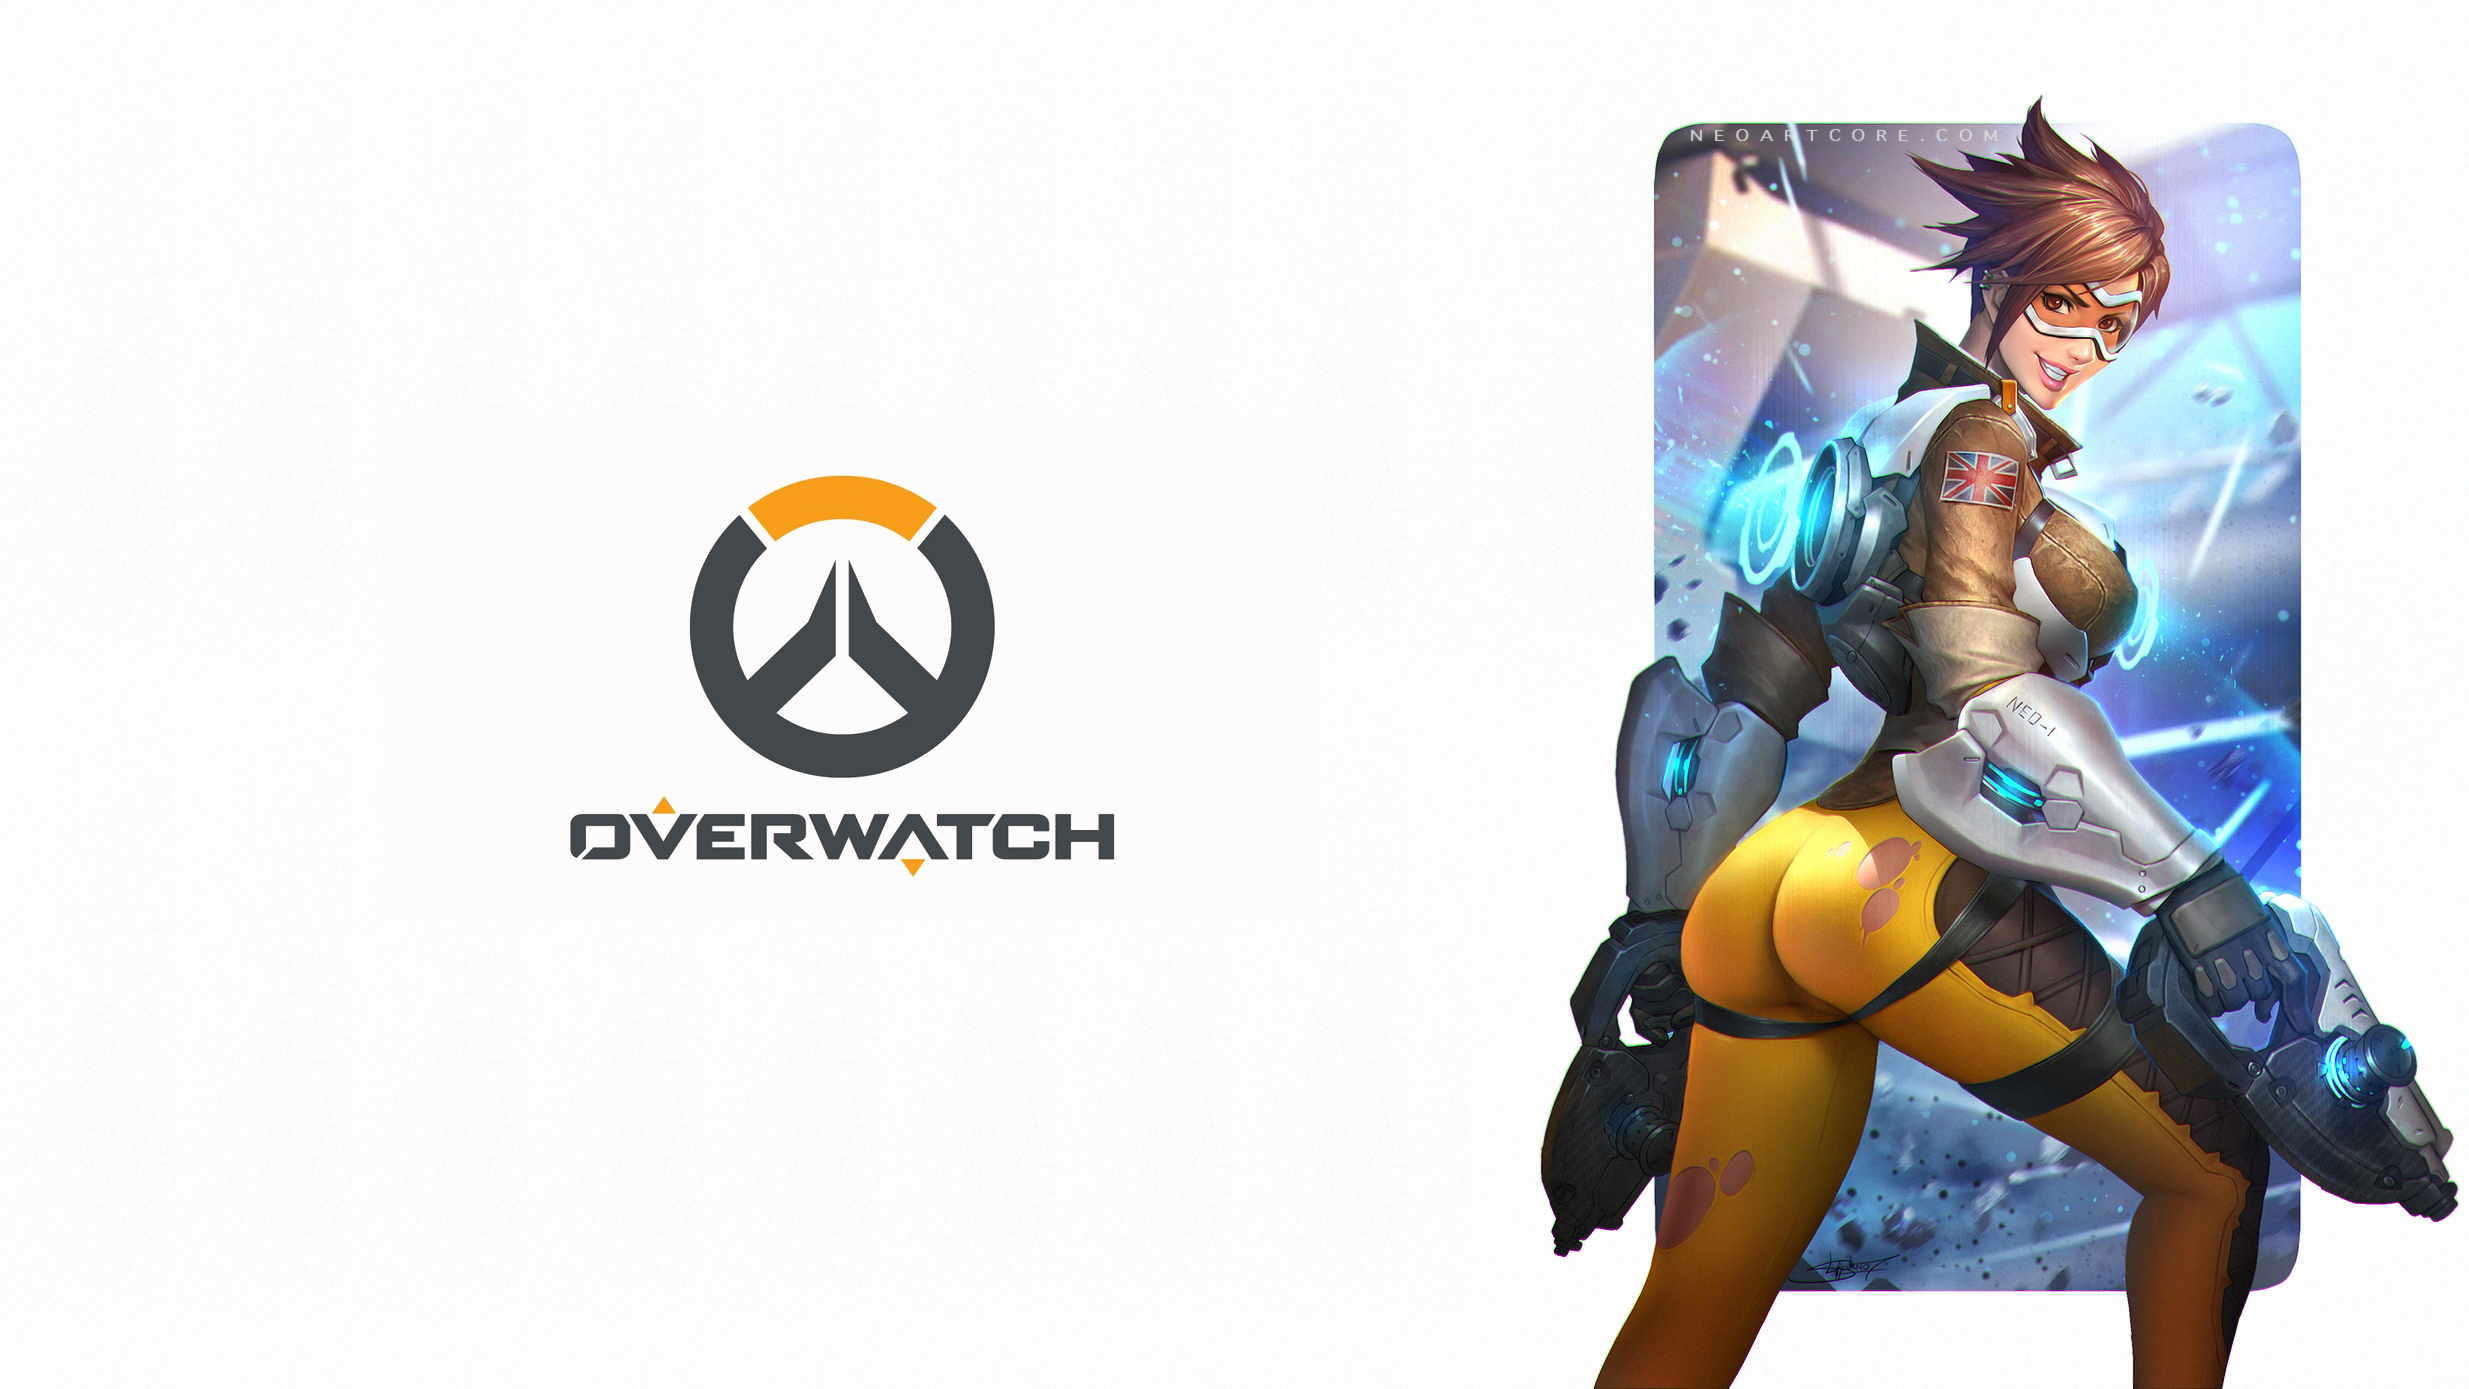 Tracer Computer Wallpapers Desktop Backgrounds 2469x1389 ID 2469x1389